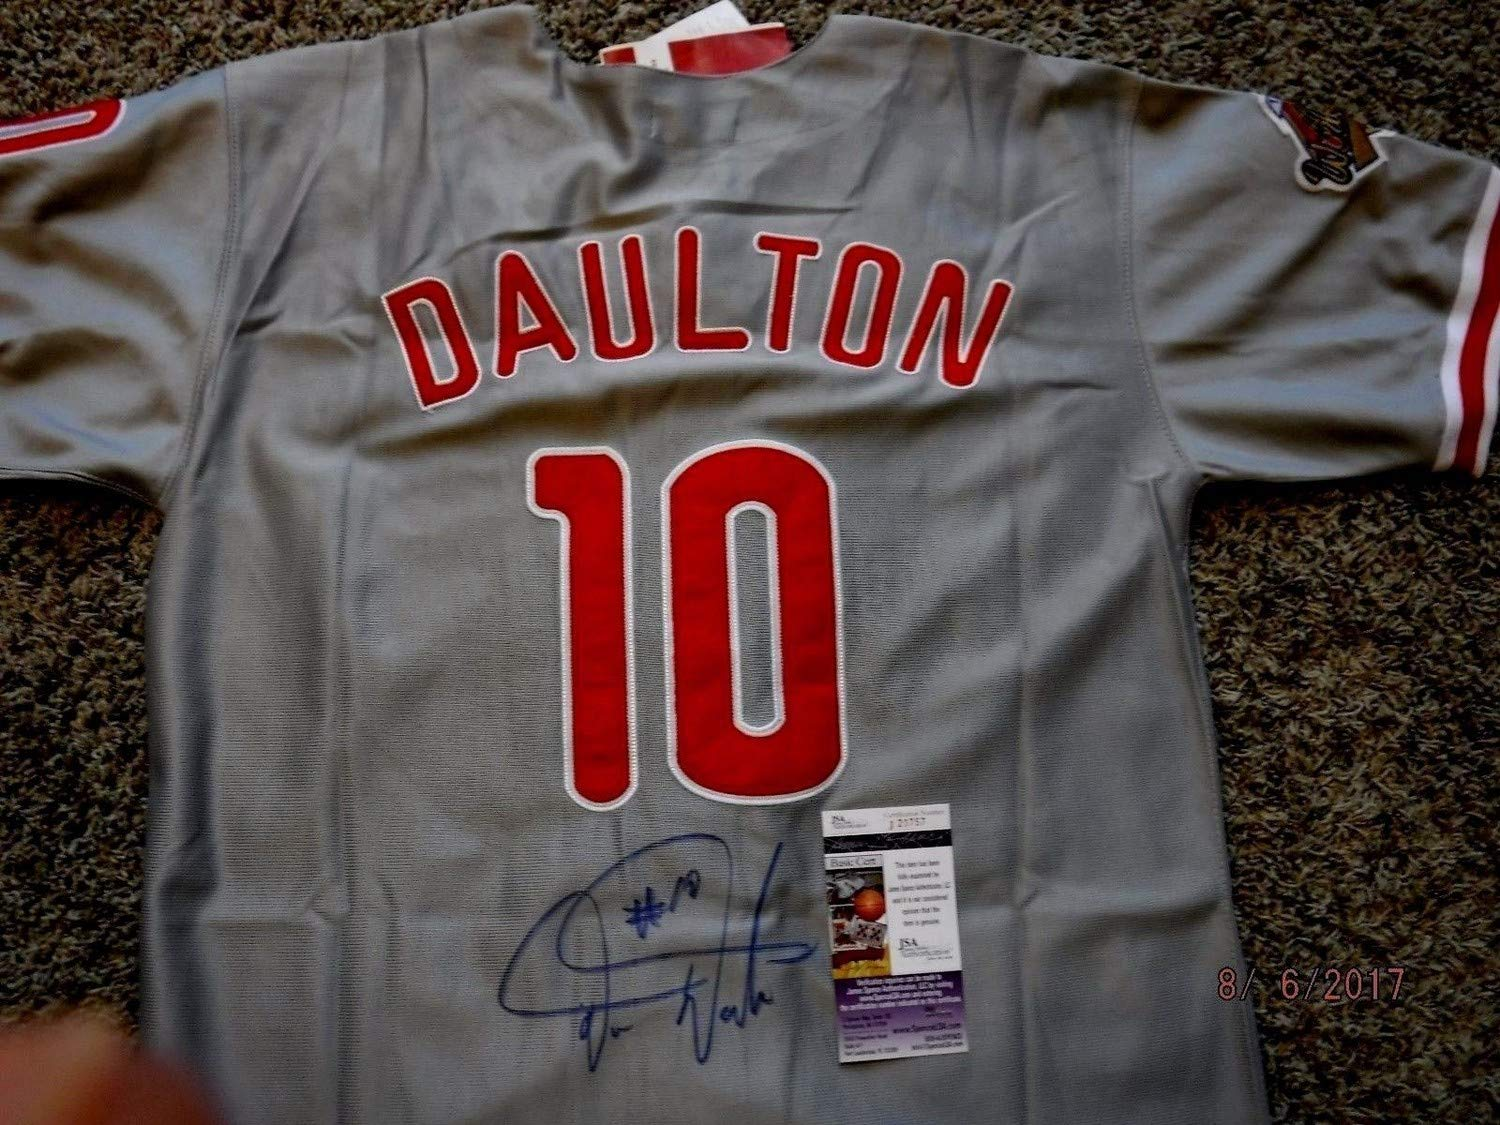 best loved 5c59d 6a057 Darren Daulton Autographed Signed 1993 Mitchell & Ness ...